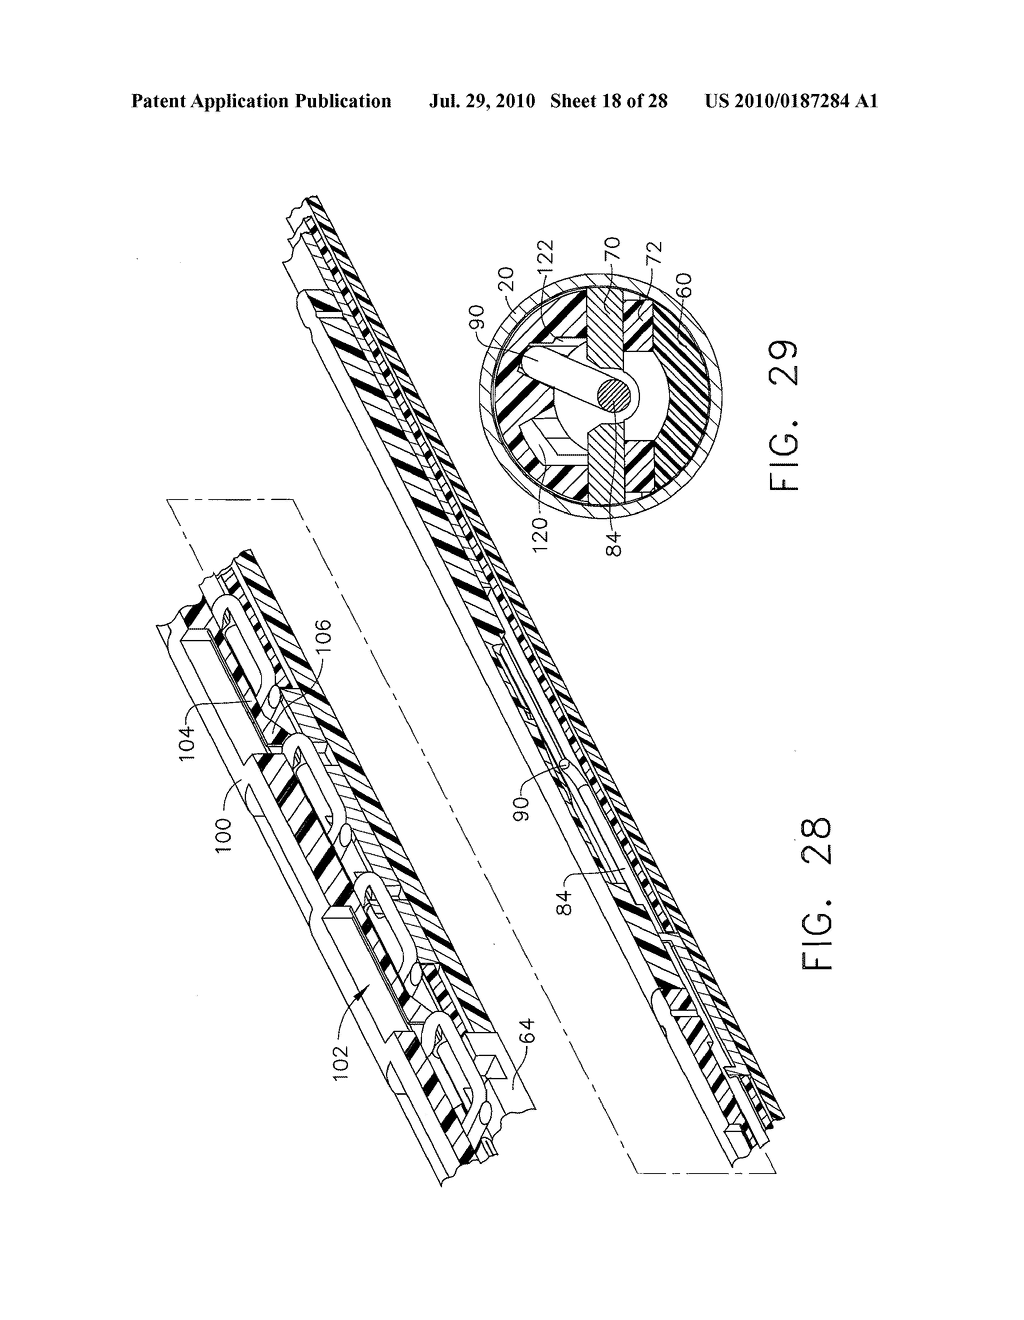 Apparatus For Feeding Staples In a Low Profile Surgical Stapler - diagram, schematic, and image 19